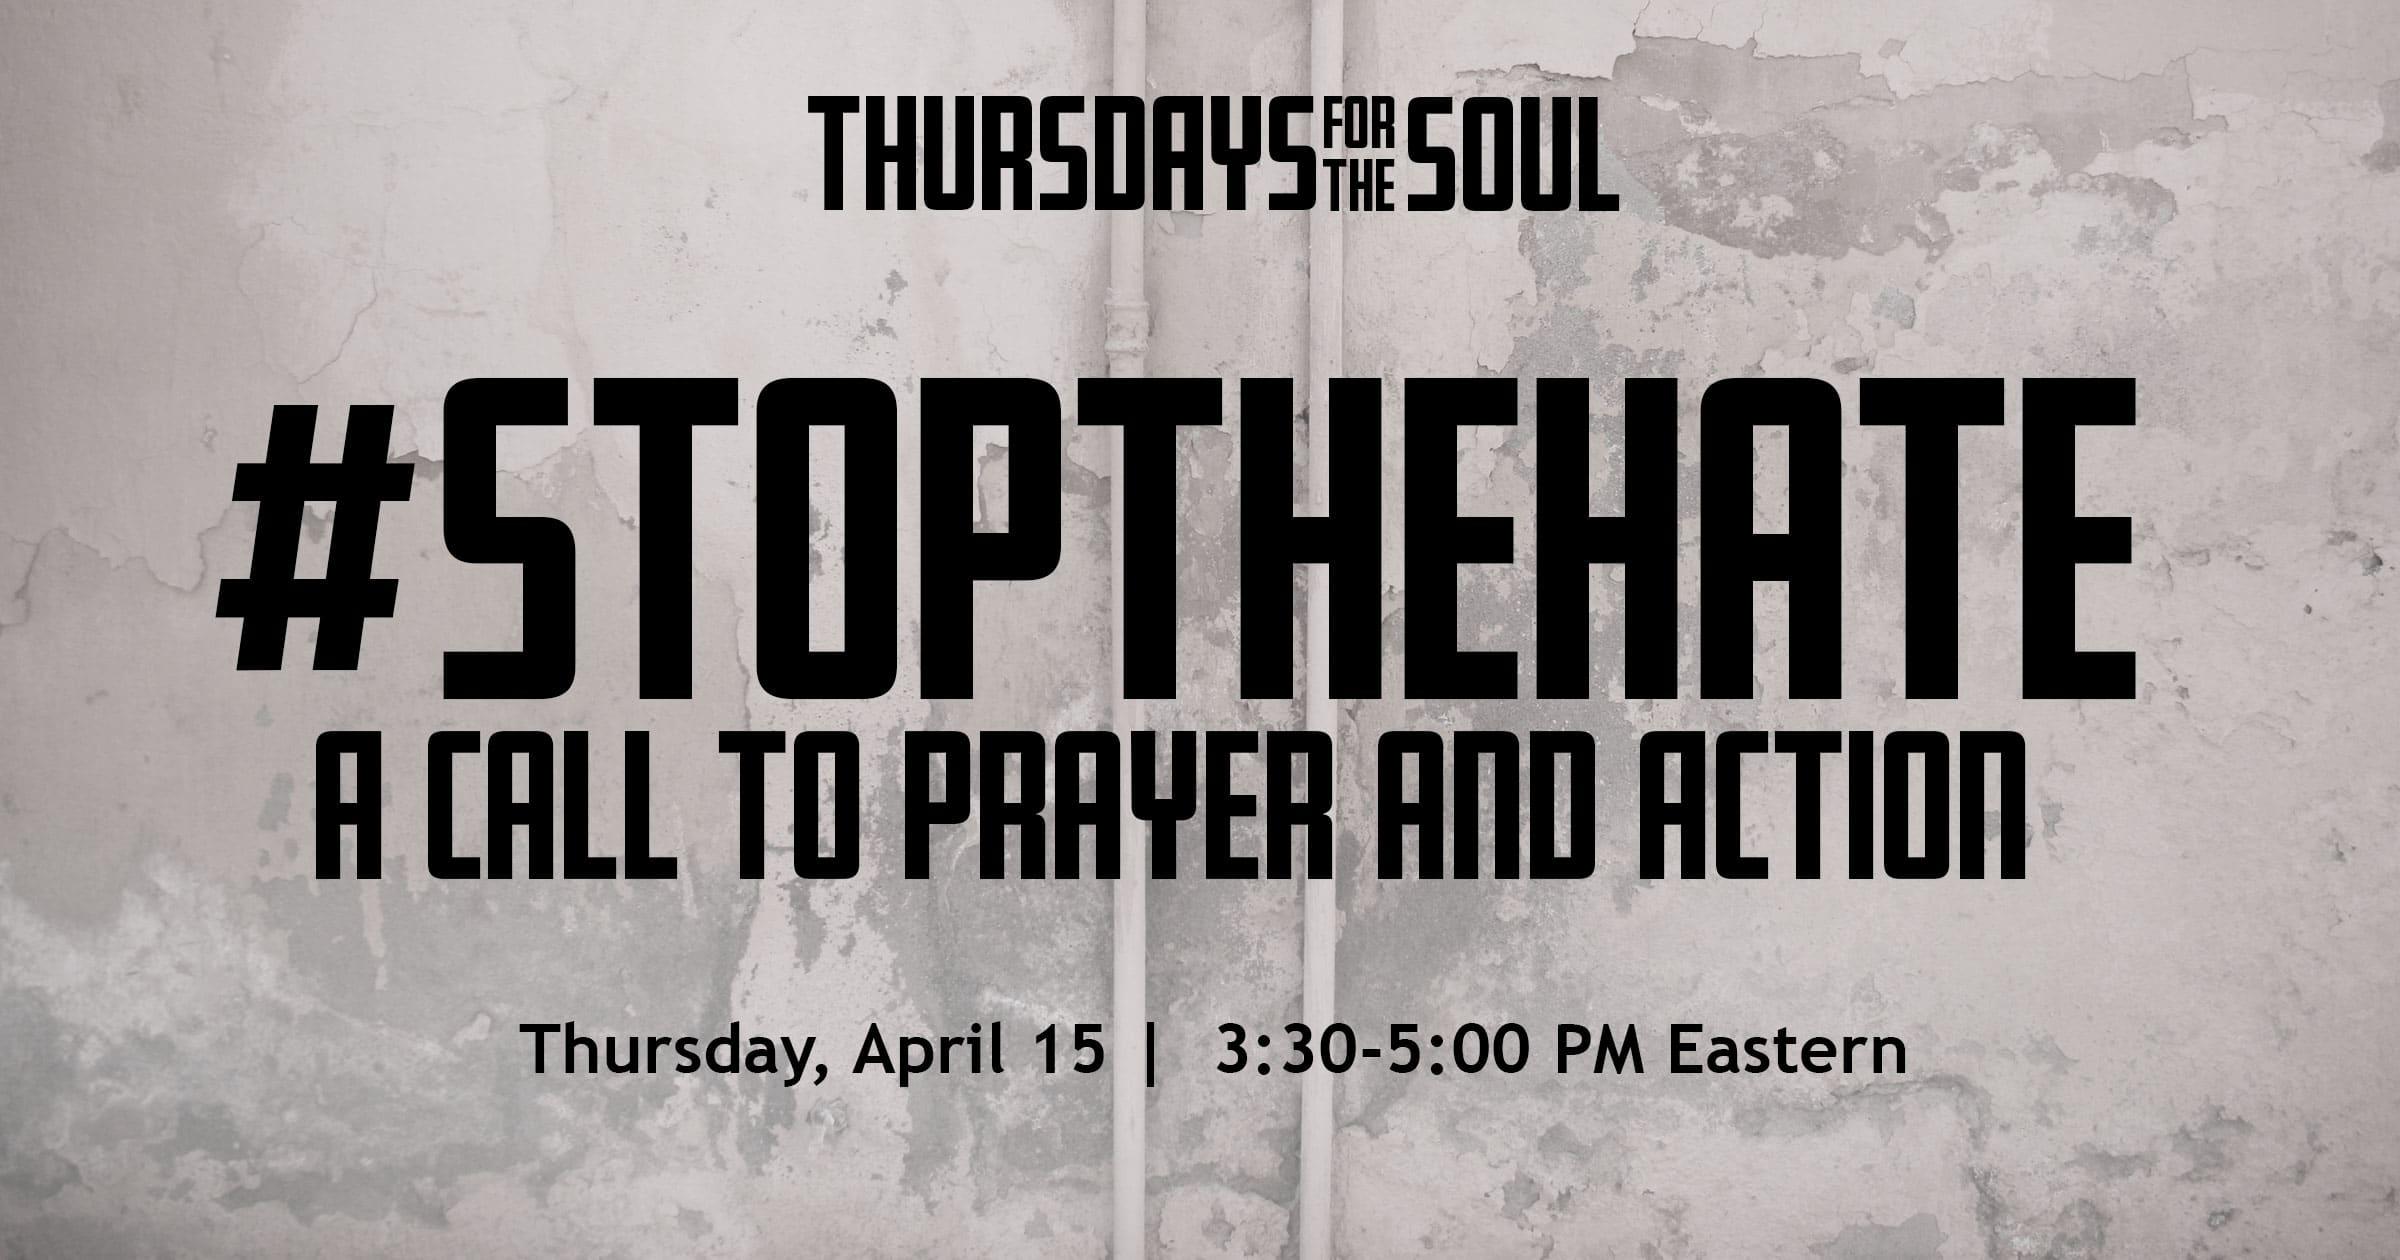 Thursdays for the soul #StopTheHate A Call to Prayer and Action. Thursday, April 15. 3:30 - 5:00 PM Eastern.